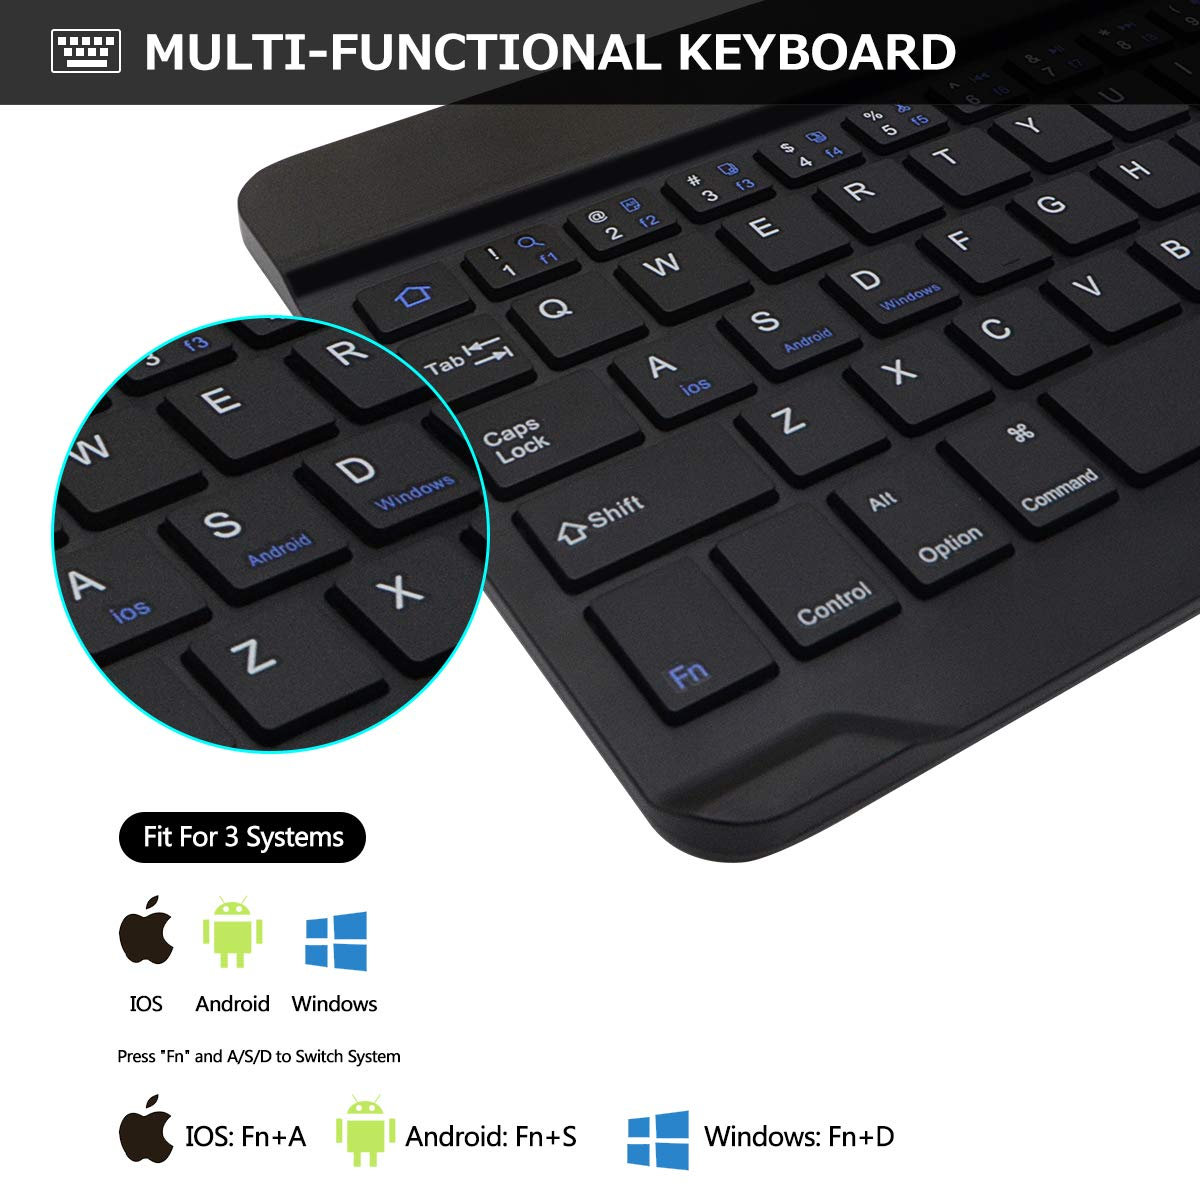 COO Detachable Wireless Bluetooth Keyboard Black with Backlit Keyboard - iPad Pro 2017 Magnetic Auto Sleep//Wake 6th Gen 5th Gen - iPad Air 2//1 iPad Keyboard Case 9.7 for New iPad 2018